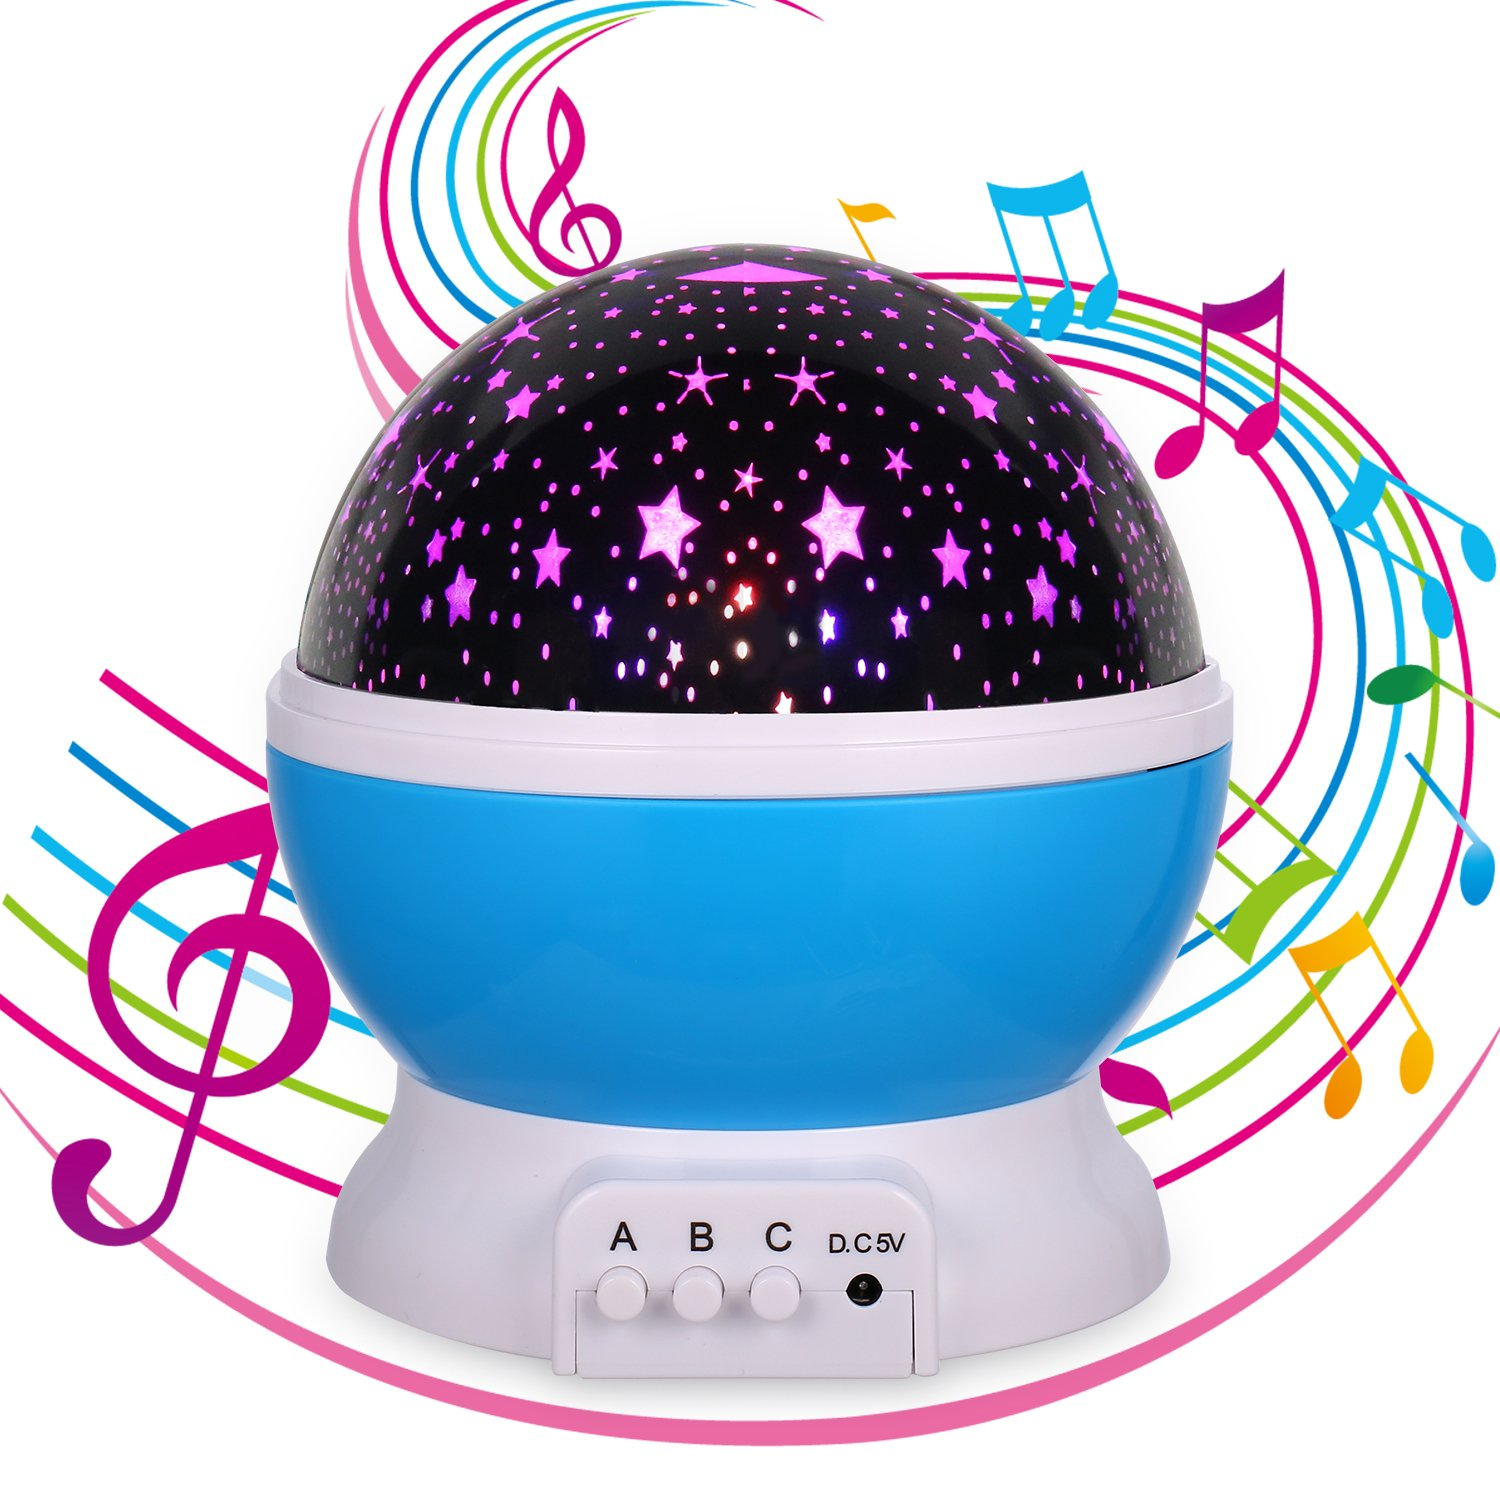 MINGKIDS Lullaby Night Light, Music Star Projector